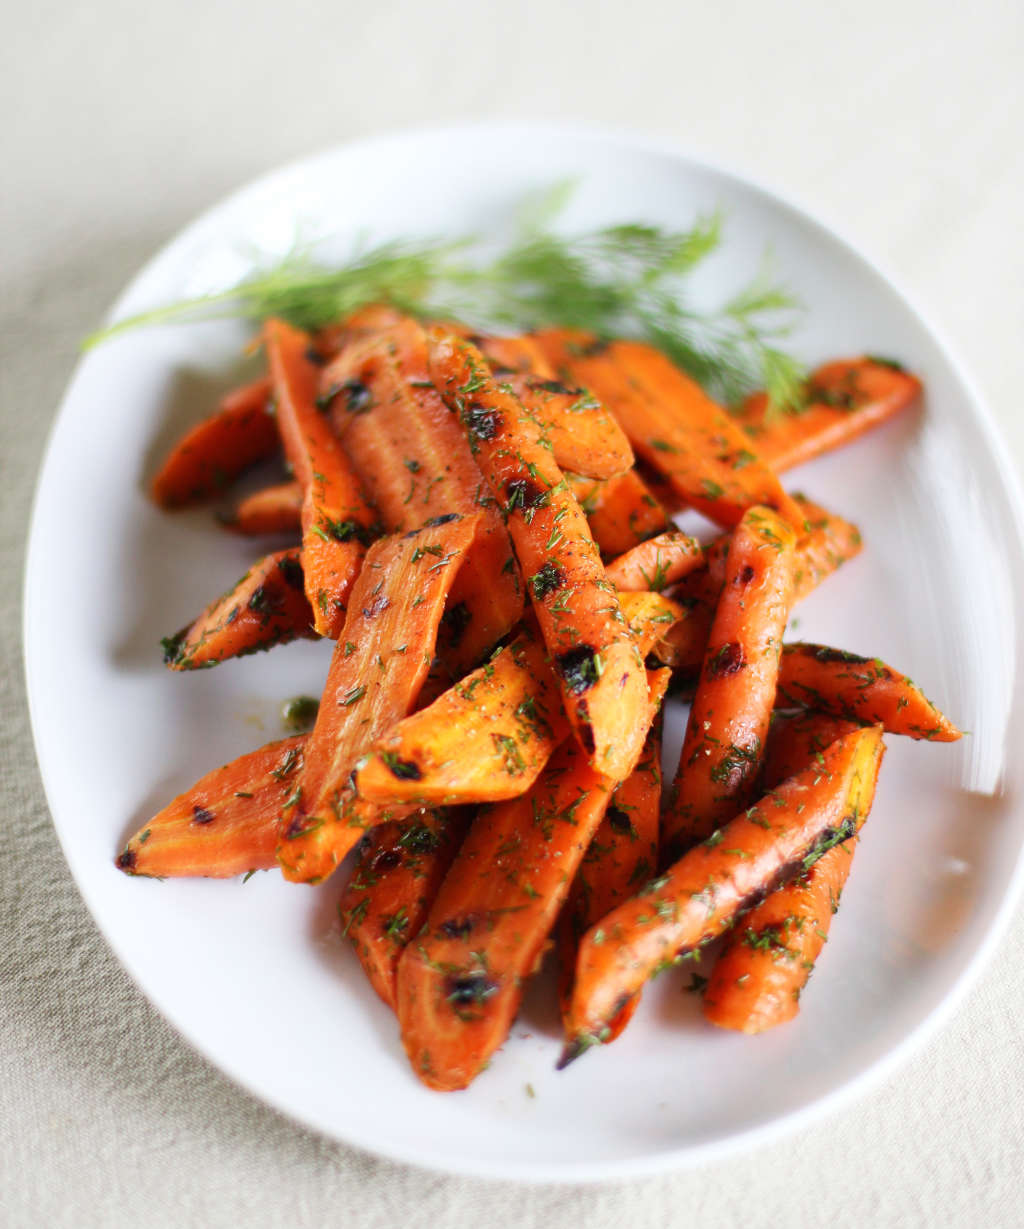 Easy Vegetable Recipe: Grilled Carrots with Lemon and Dill